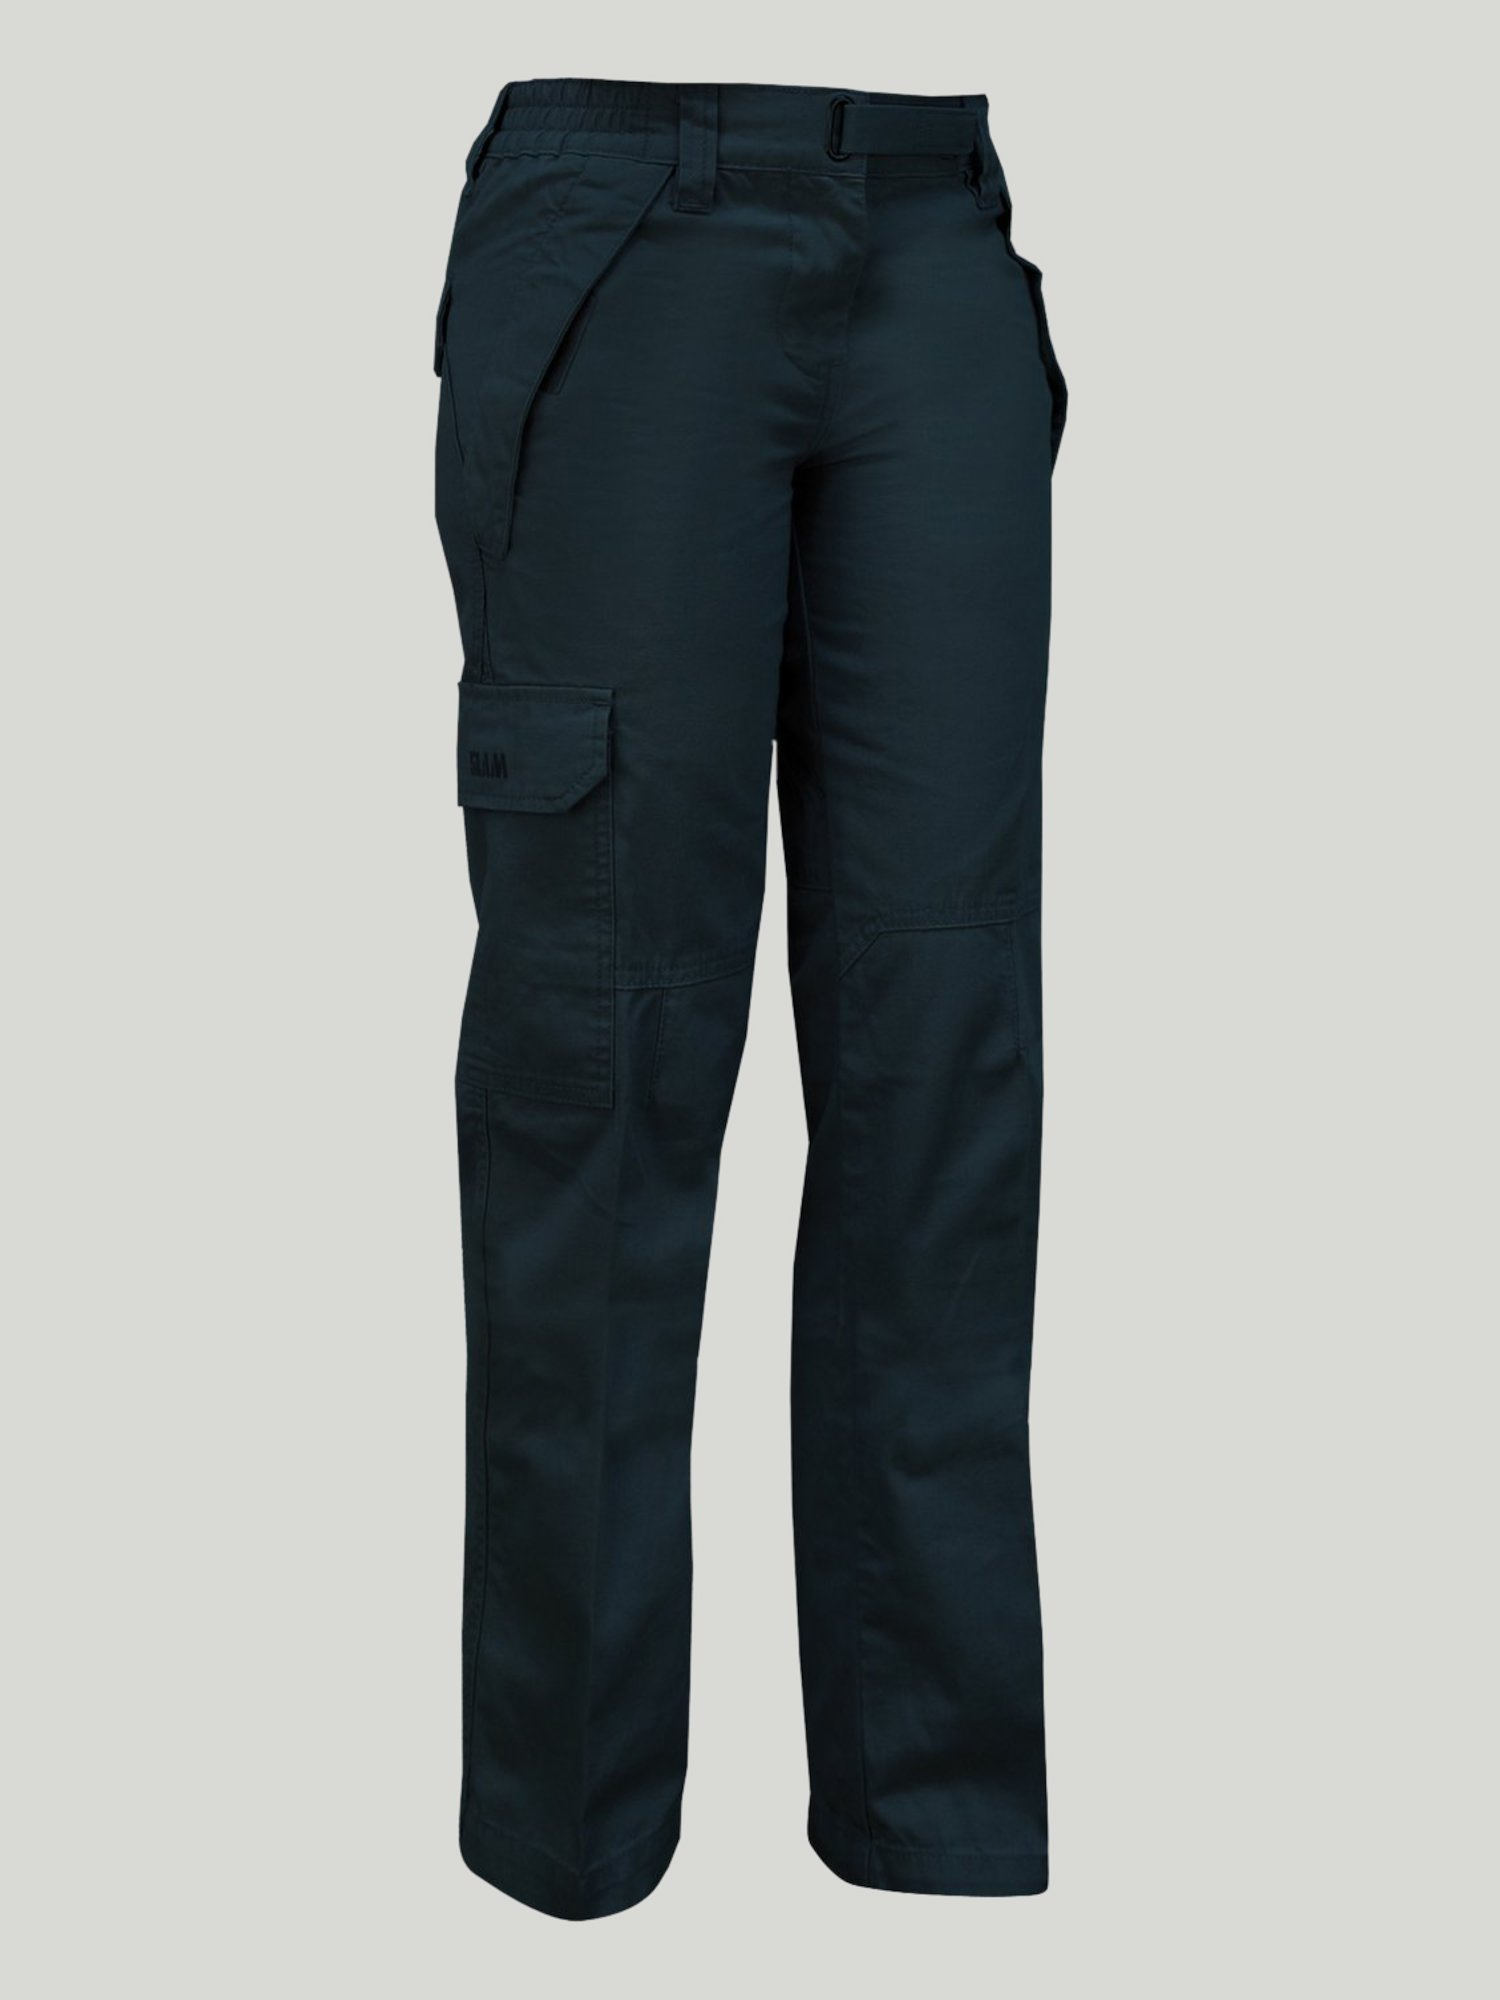 Woman New sailing pants - Navy